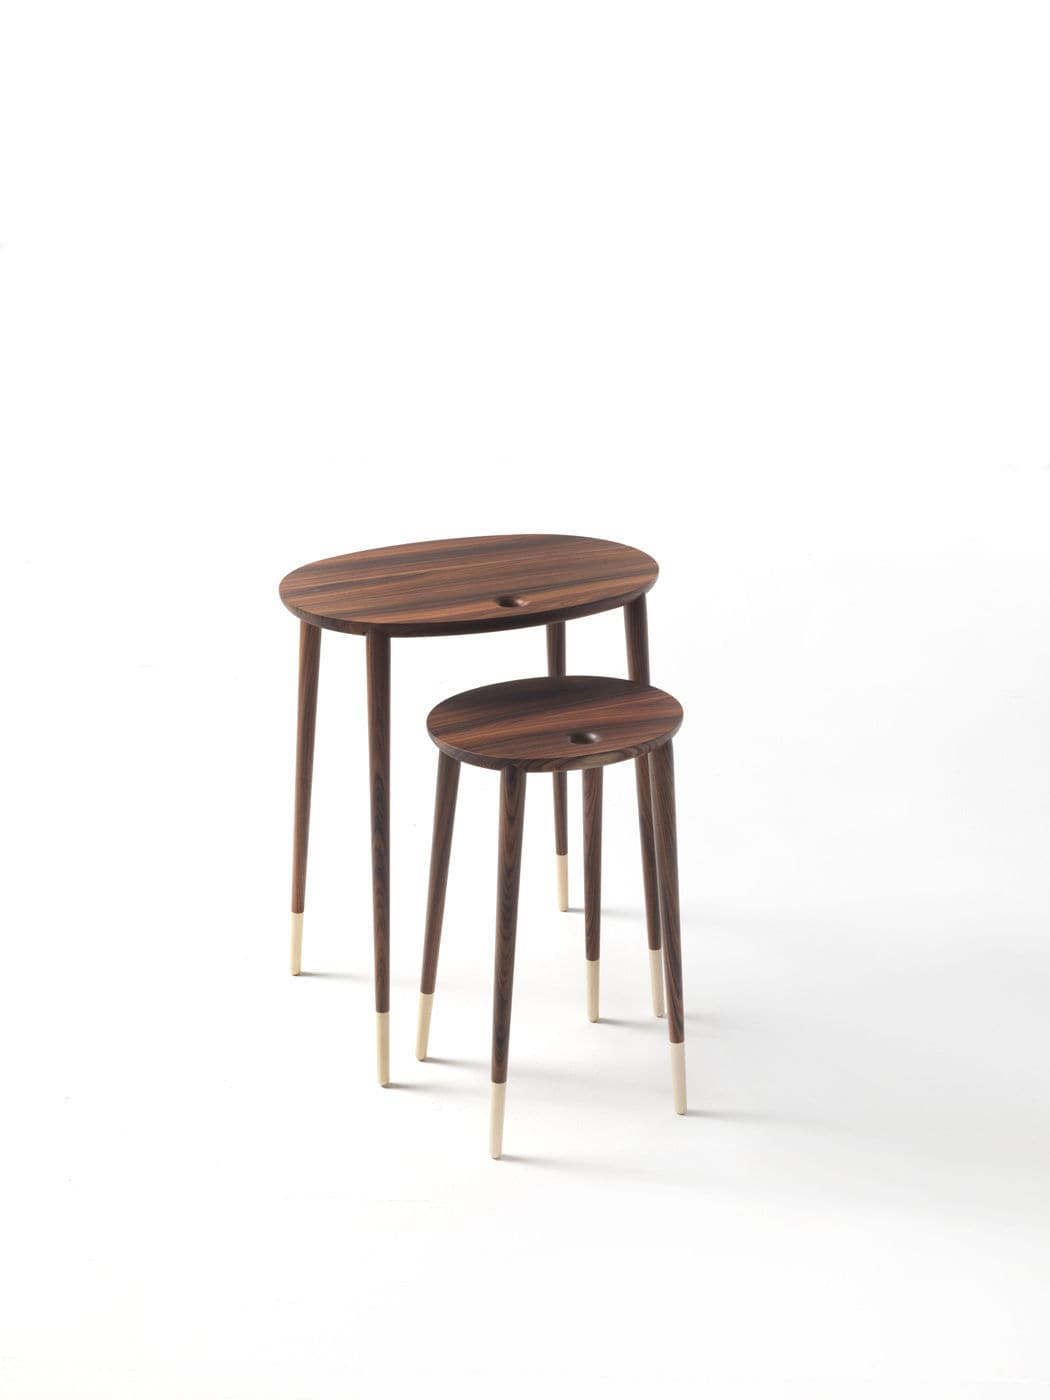 nesting tables next selzer piece knurl accent set two contemporary walnut rosewood rogers table cloth runners white cube end round trestle bar height kitchen and chairs diy tripod